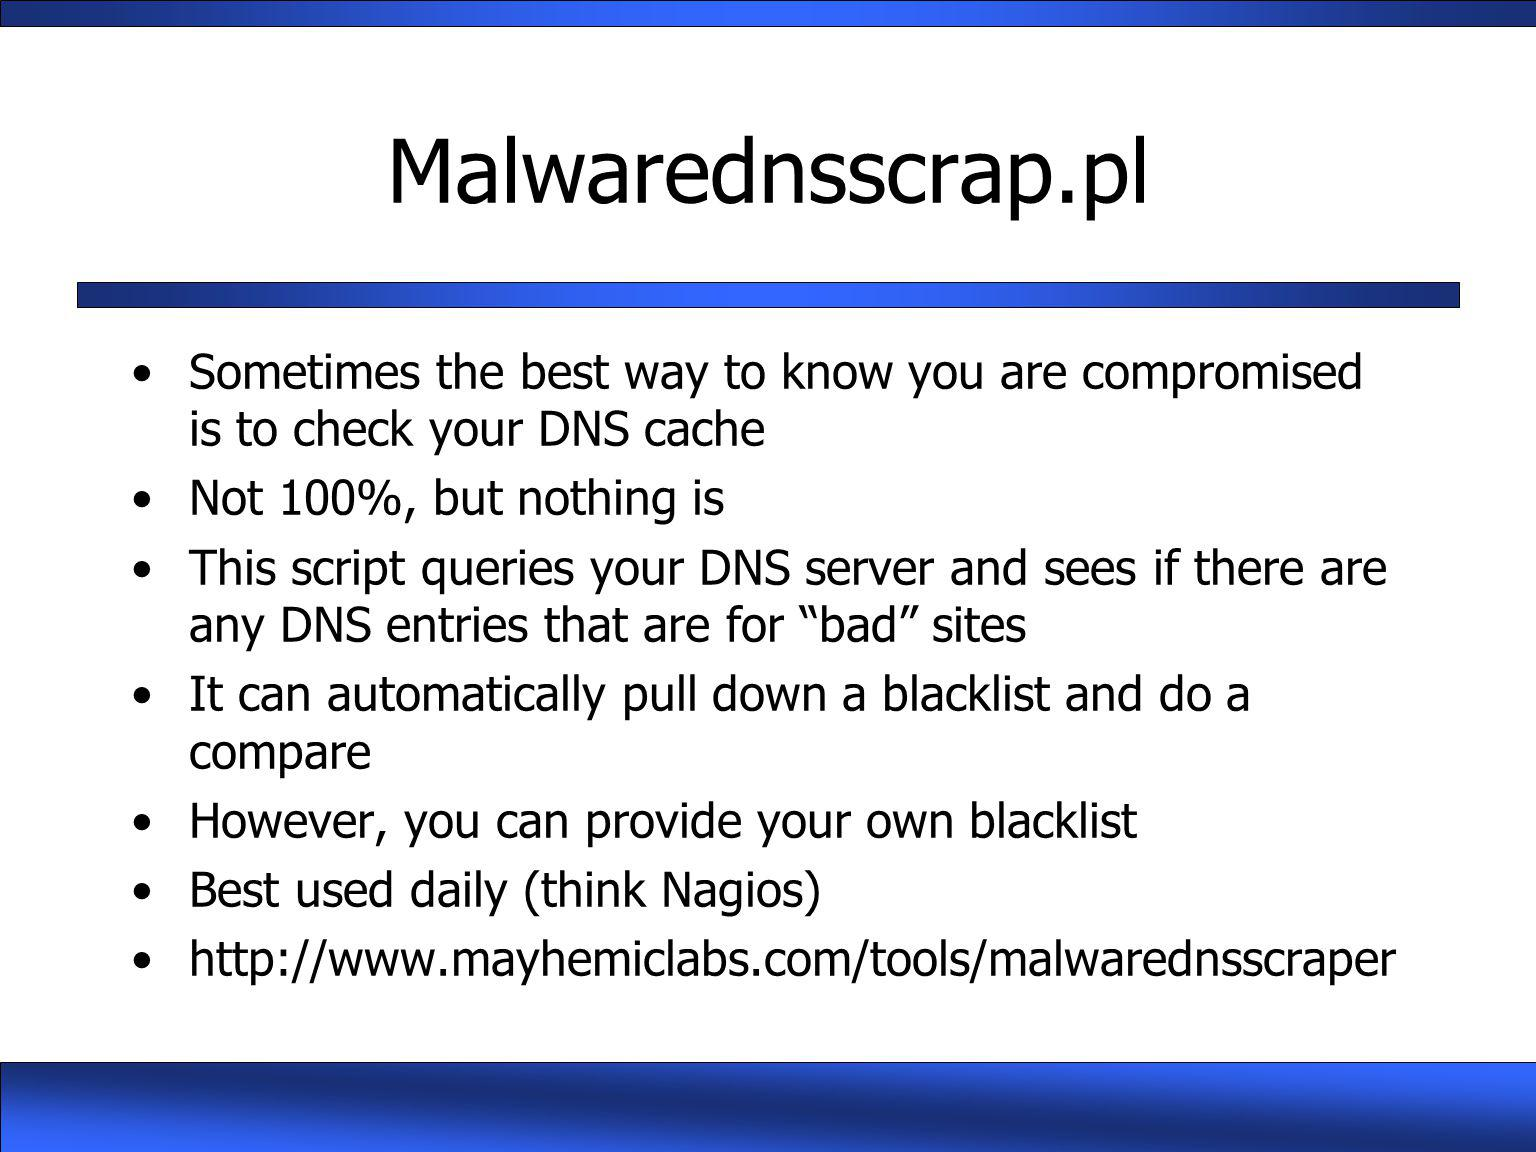 Malwarednsscrap.pl Sometimes the best way to know you are compromised is to check your DNS cache Not 100%, but nothing is This script queries your DNS